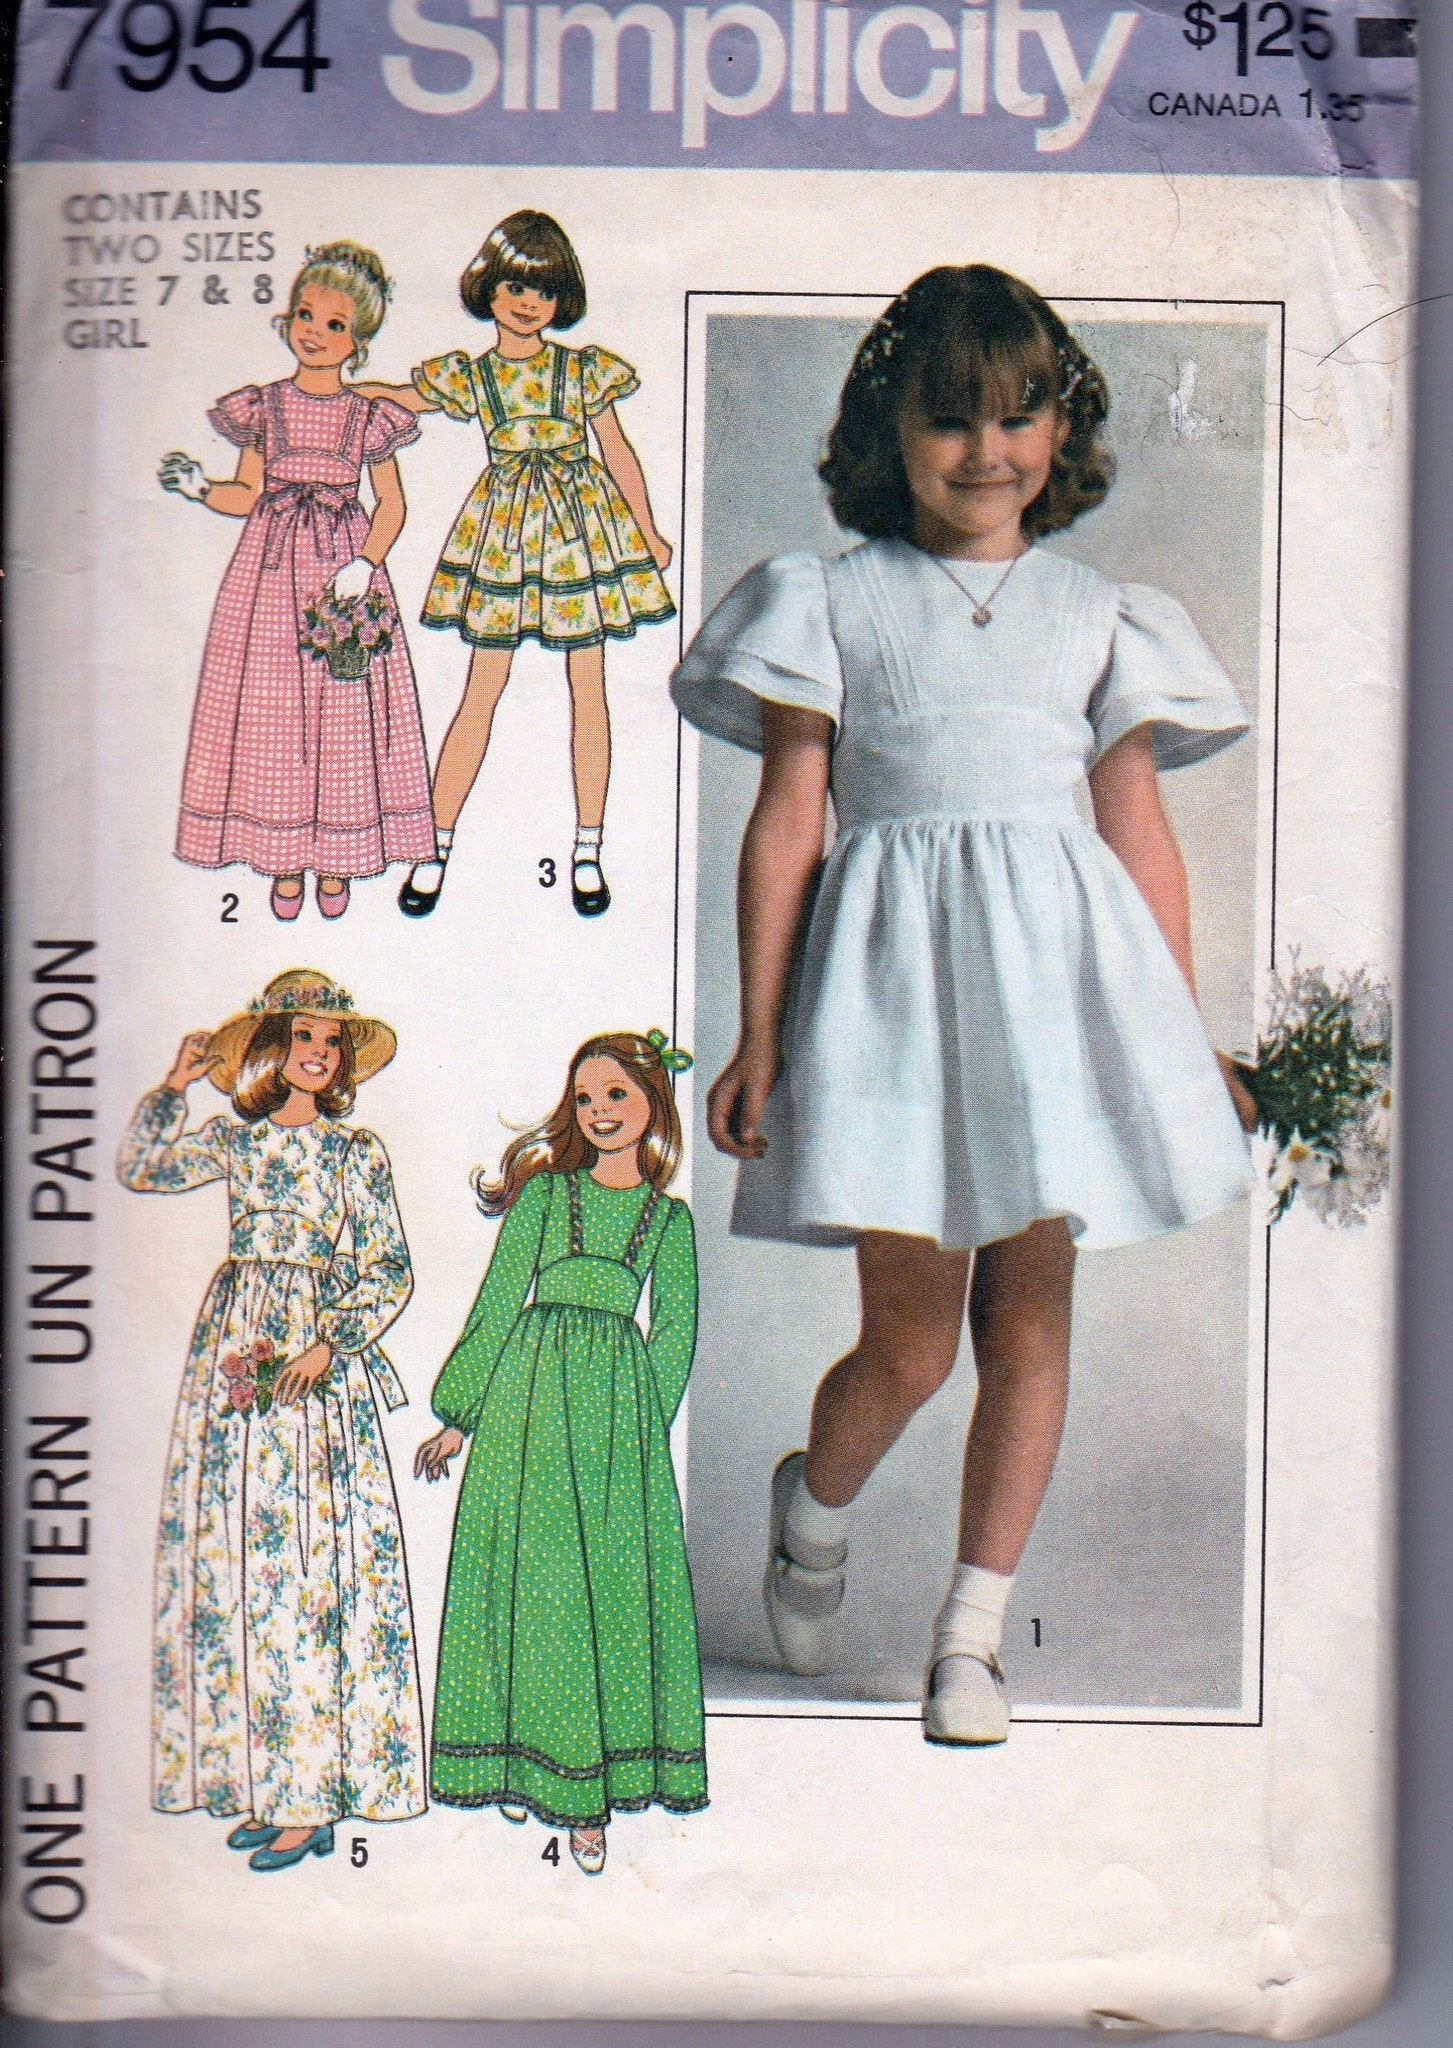 Simplicity 7954 Vintage 1970's Sewing Pattern Girls Easter Flower Girl First Communion Dress - VintageStitching - Vintage Sewing Patterns